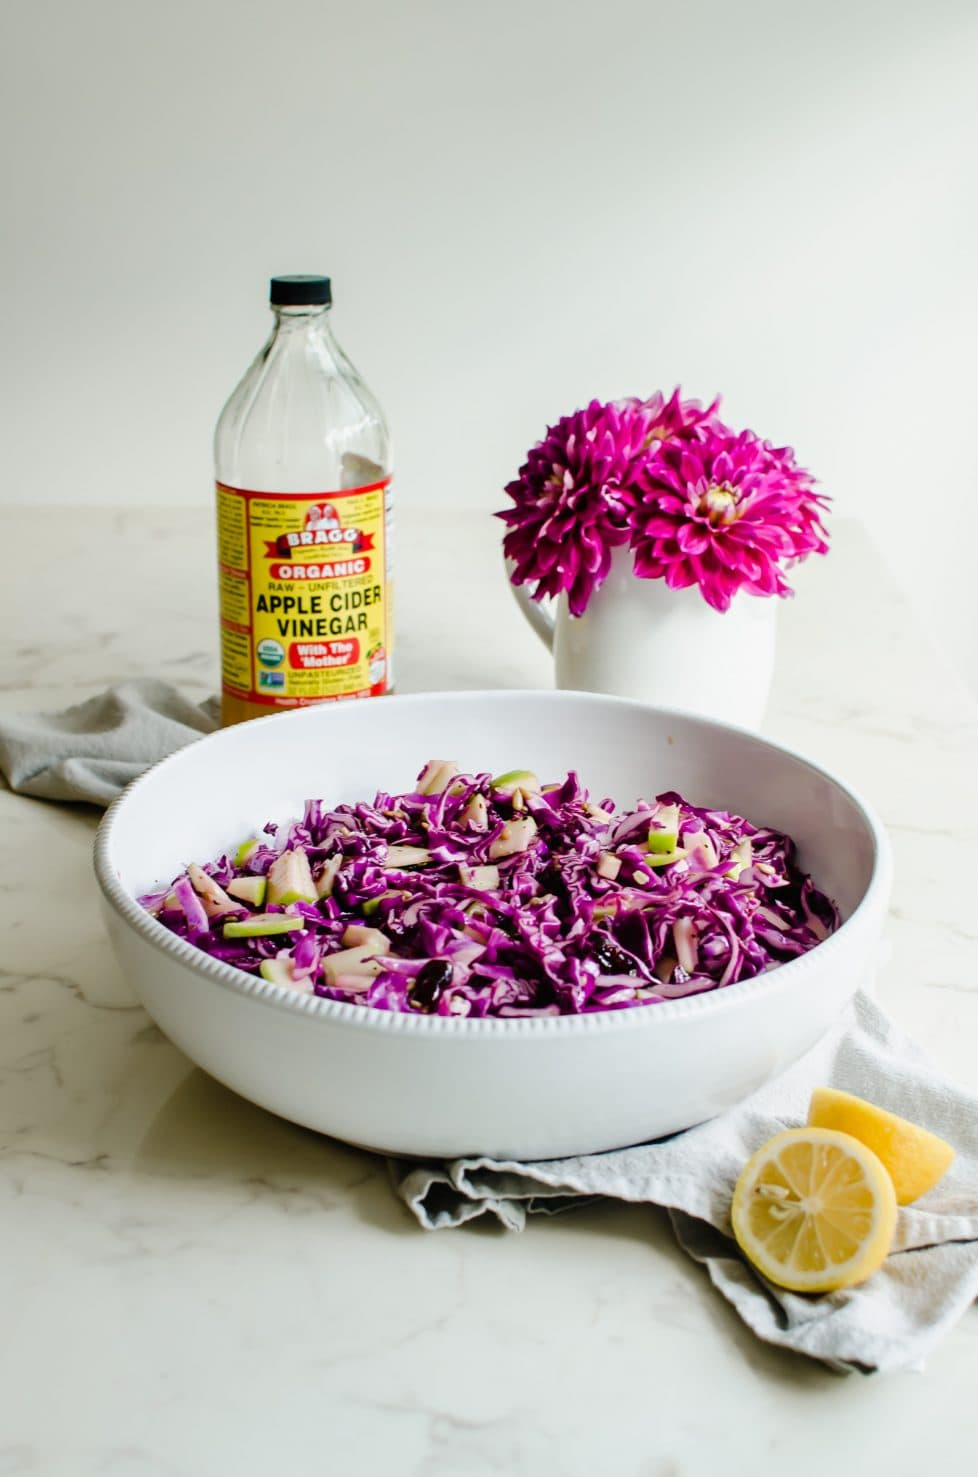 A large white bowl with red cabbage apple slaw, a bottle of cider vinegar, and a bouquet of pink dahlias.